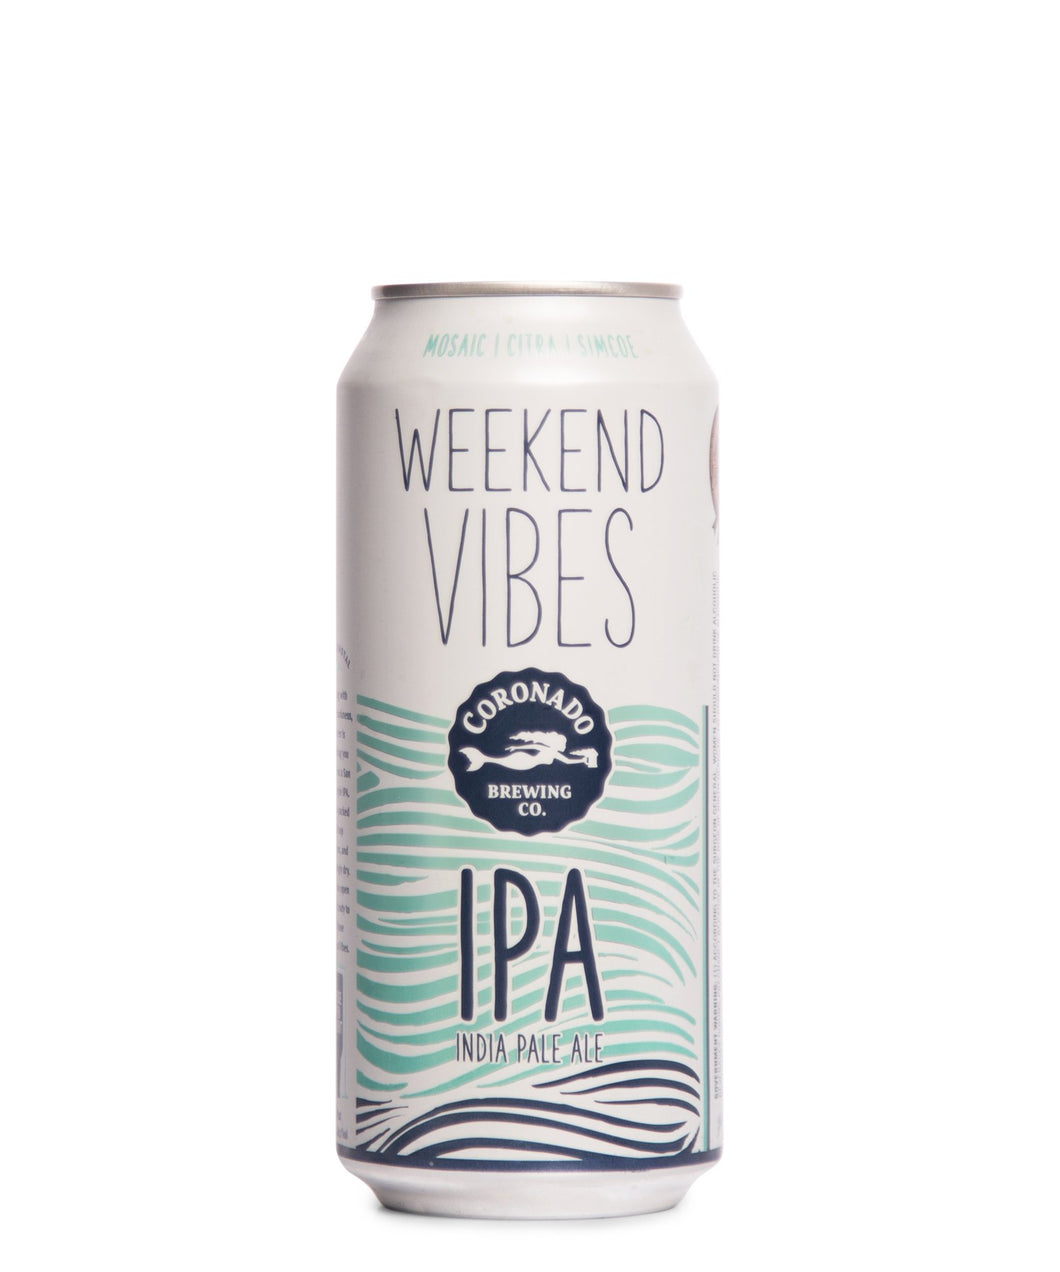 Weekend Vibes - Coronado Brewing Company Delivered By TapRm